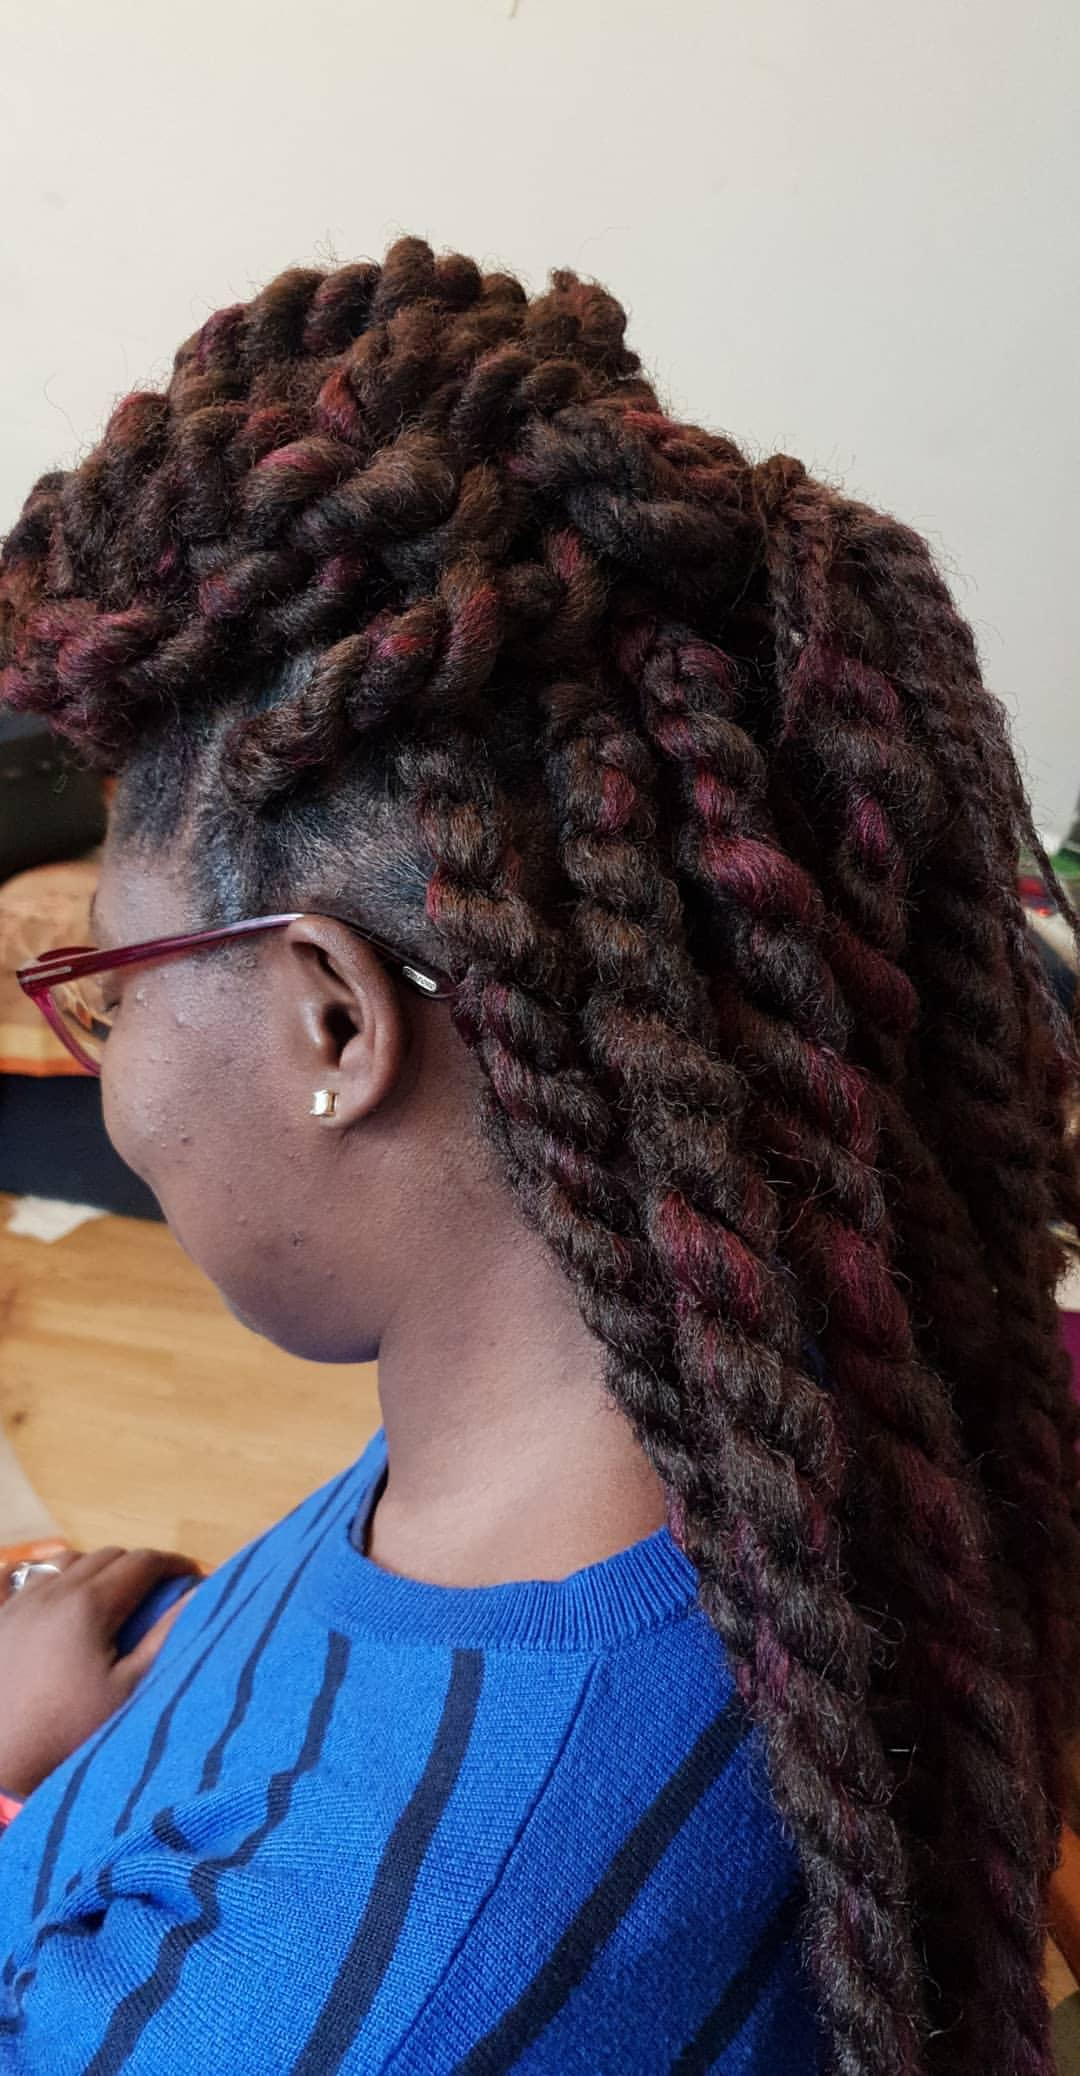 salon de coiffure afro tresse tresses box braids crochet braids vanilles tissages paris 75 77 78 91 92 93 94 95 XMBASDMB